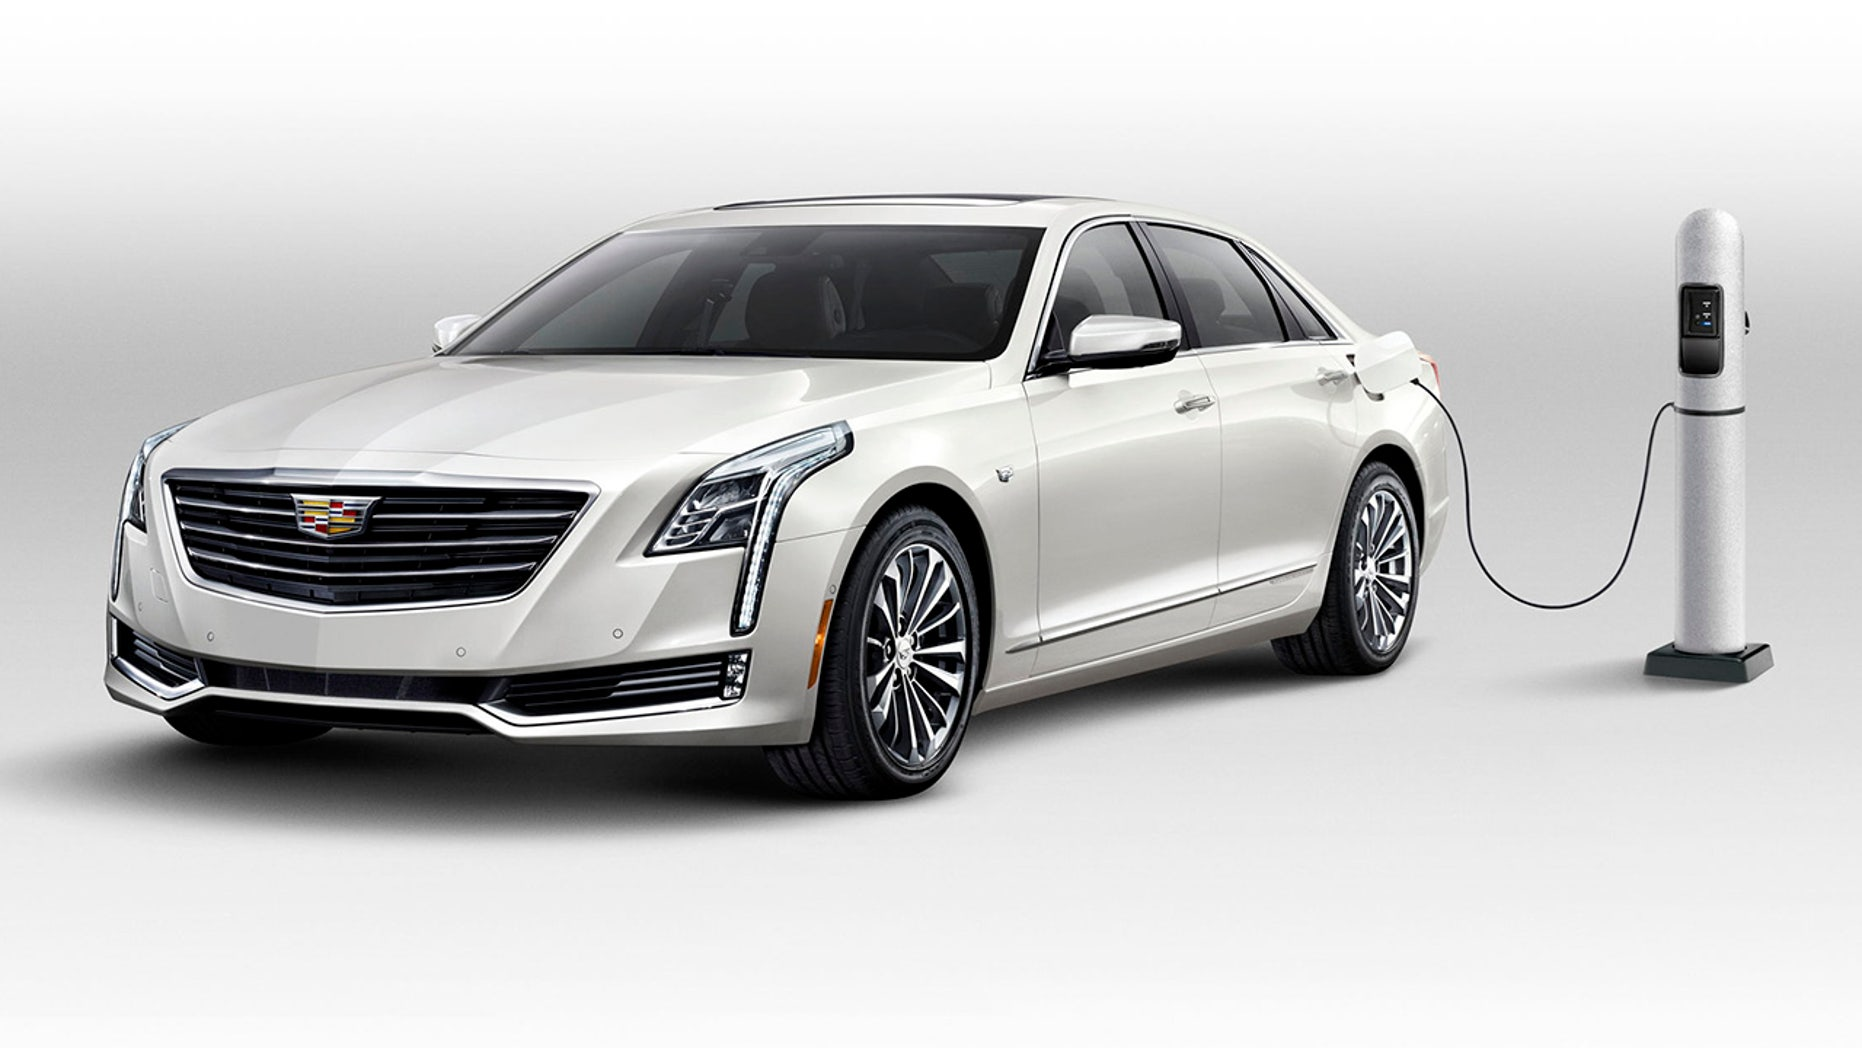 The Cadillac Ct6 Plug In Hybrid Was Discontinued After Two Model Years